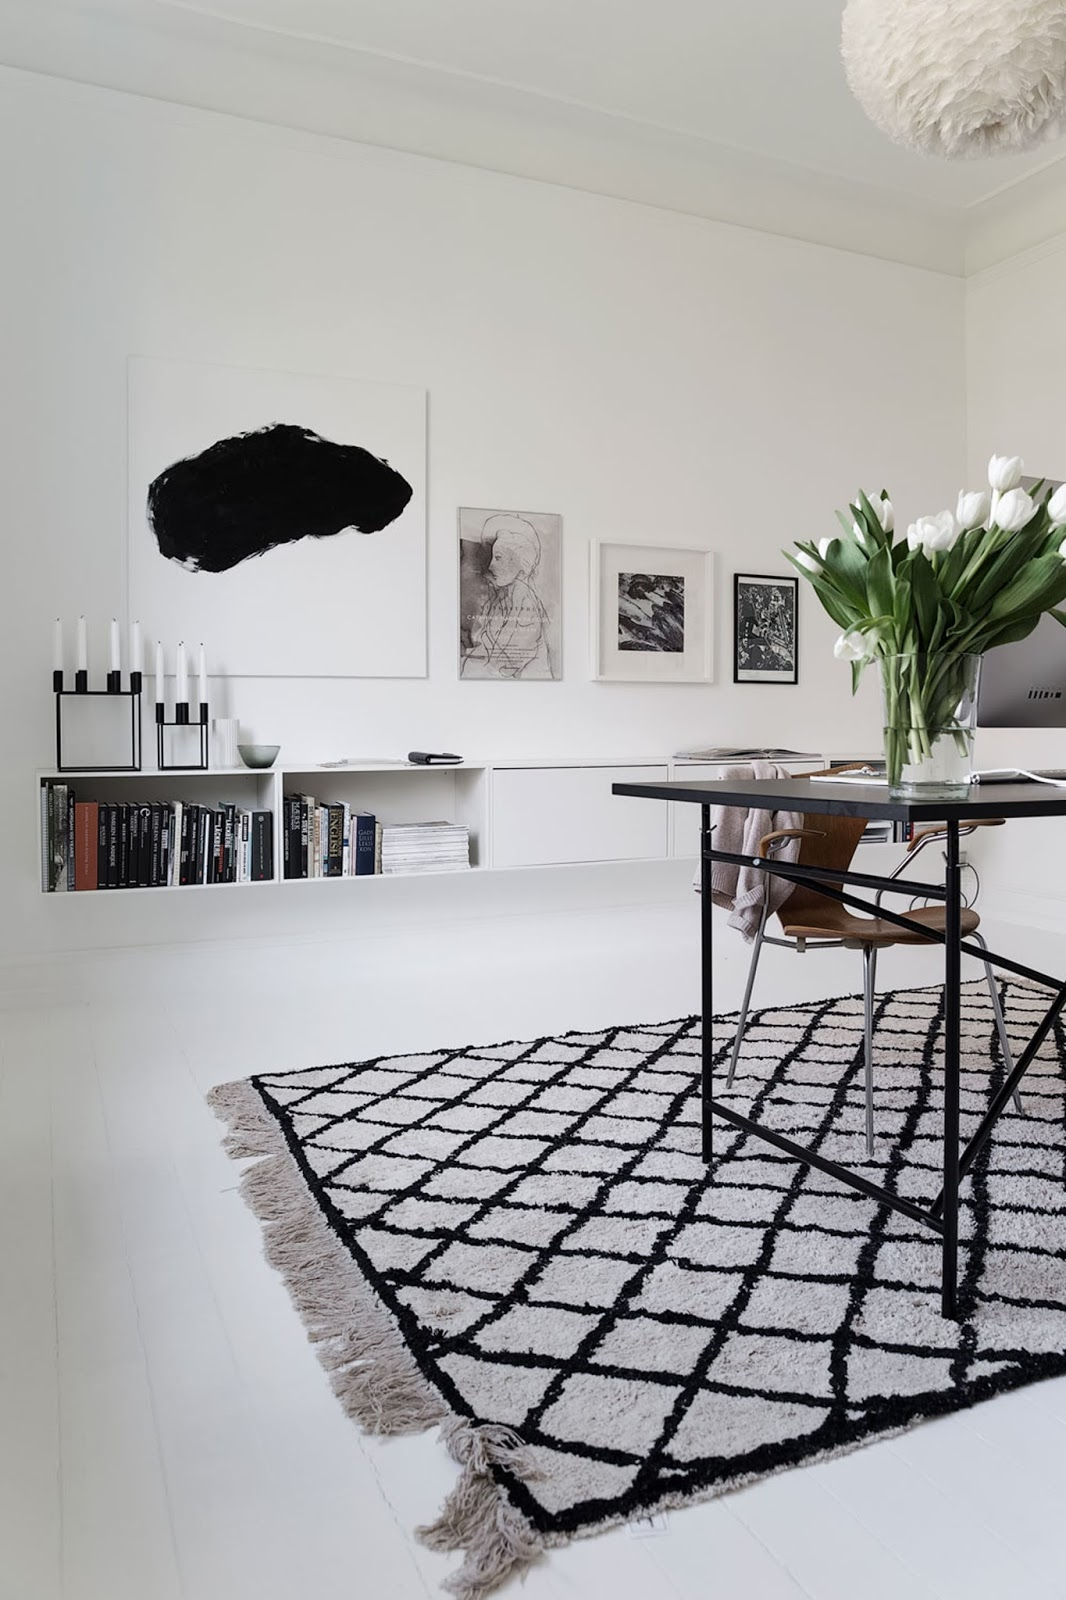 black and white interior design, nordic home, black furniture, white floor, monochrome decor, textured rug, arne jacobsen chair